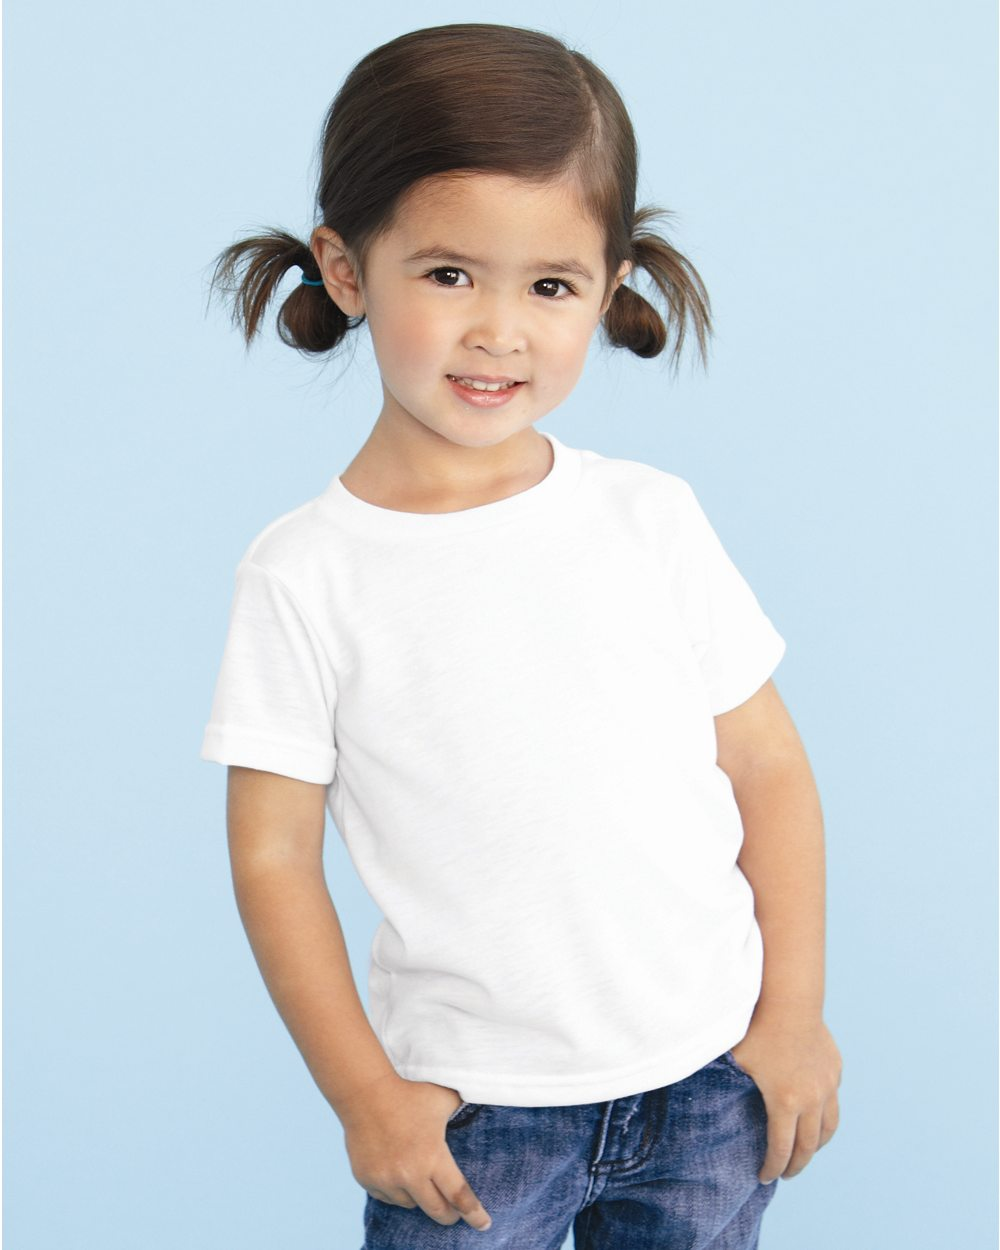 46f3c5d6 SubliVie 1310-Toddler Polyester T-Shirt $3.88 - Infants/Toddlers' T-Shirts